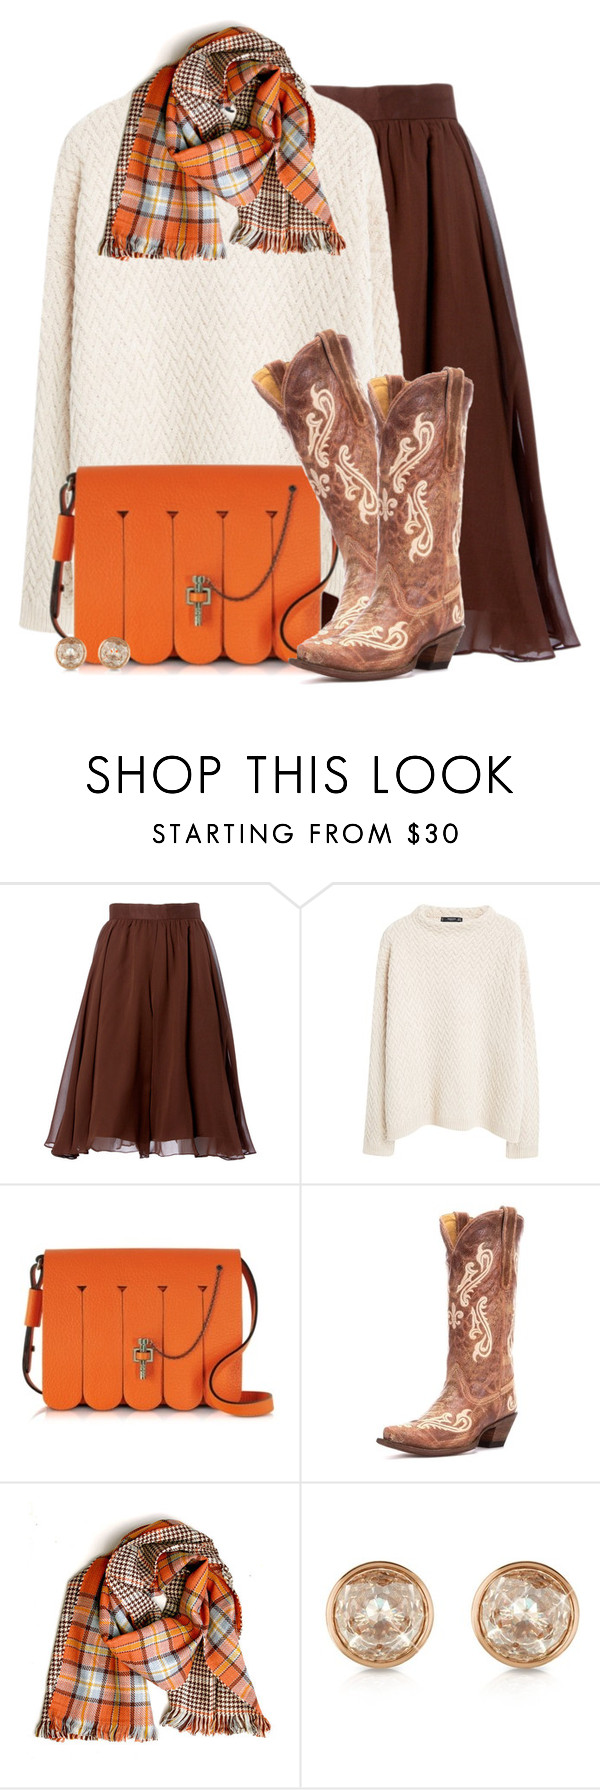 """""""Carven Handbags Malher Fringe Bag"""" by colierollers ❤ liked on Polyvore featuring Carolina Herrera, MANGO, Carven and Michael Kors"""